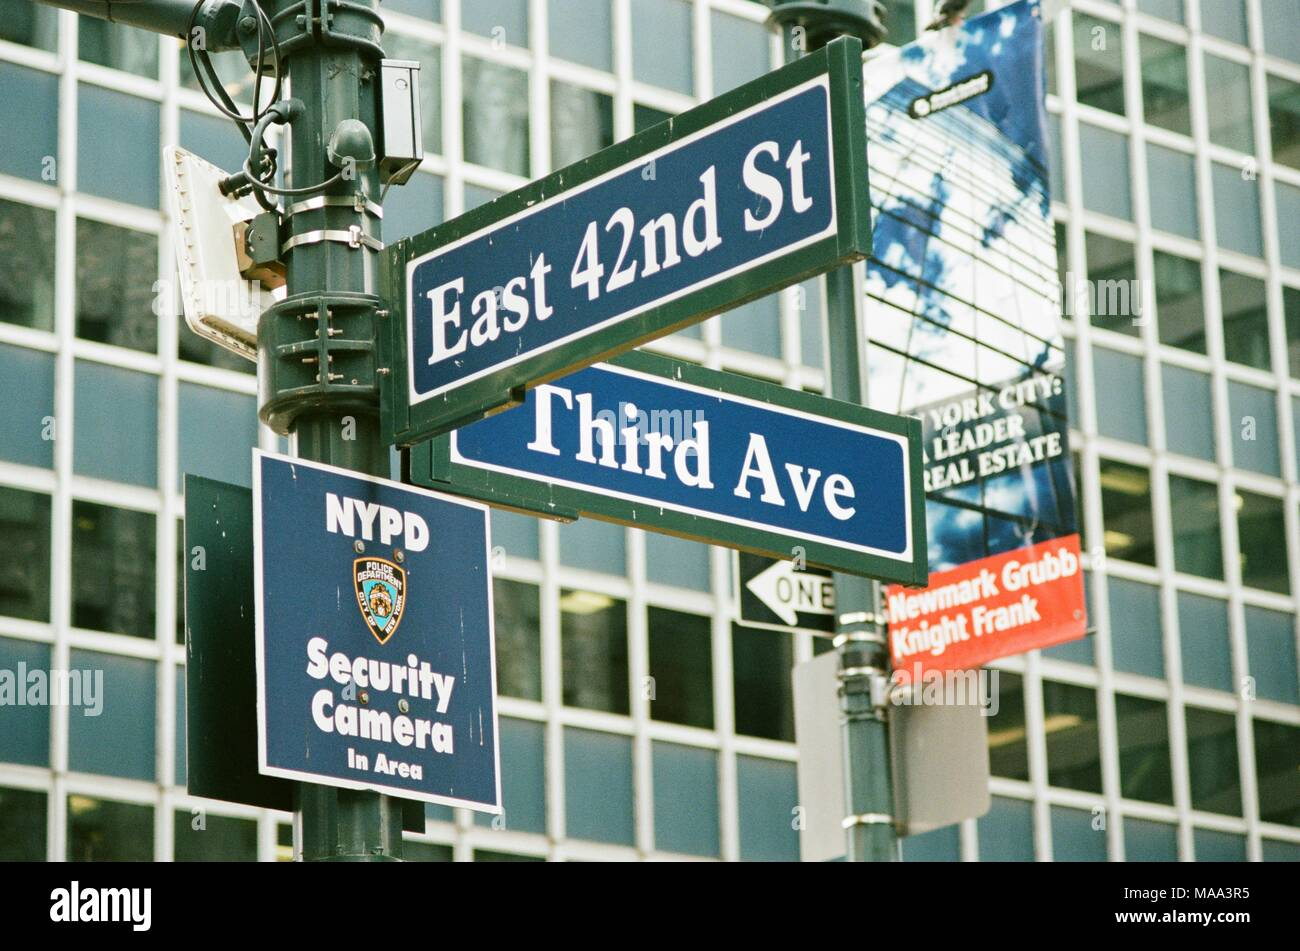 Road sign for the intersection of 42nd Street and 3rd Avenue in Manhattan, New York City, New York, with NYPD surveillance sign also visible, September 15, 2017. () - Stock Image